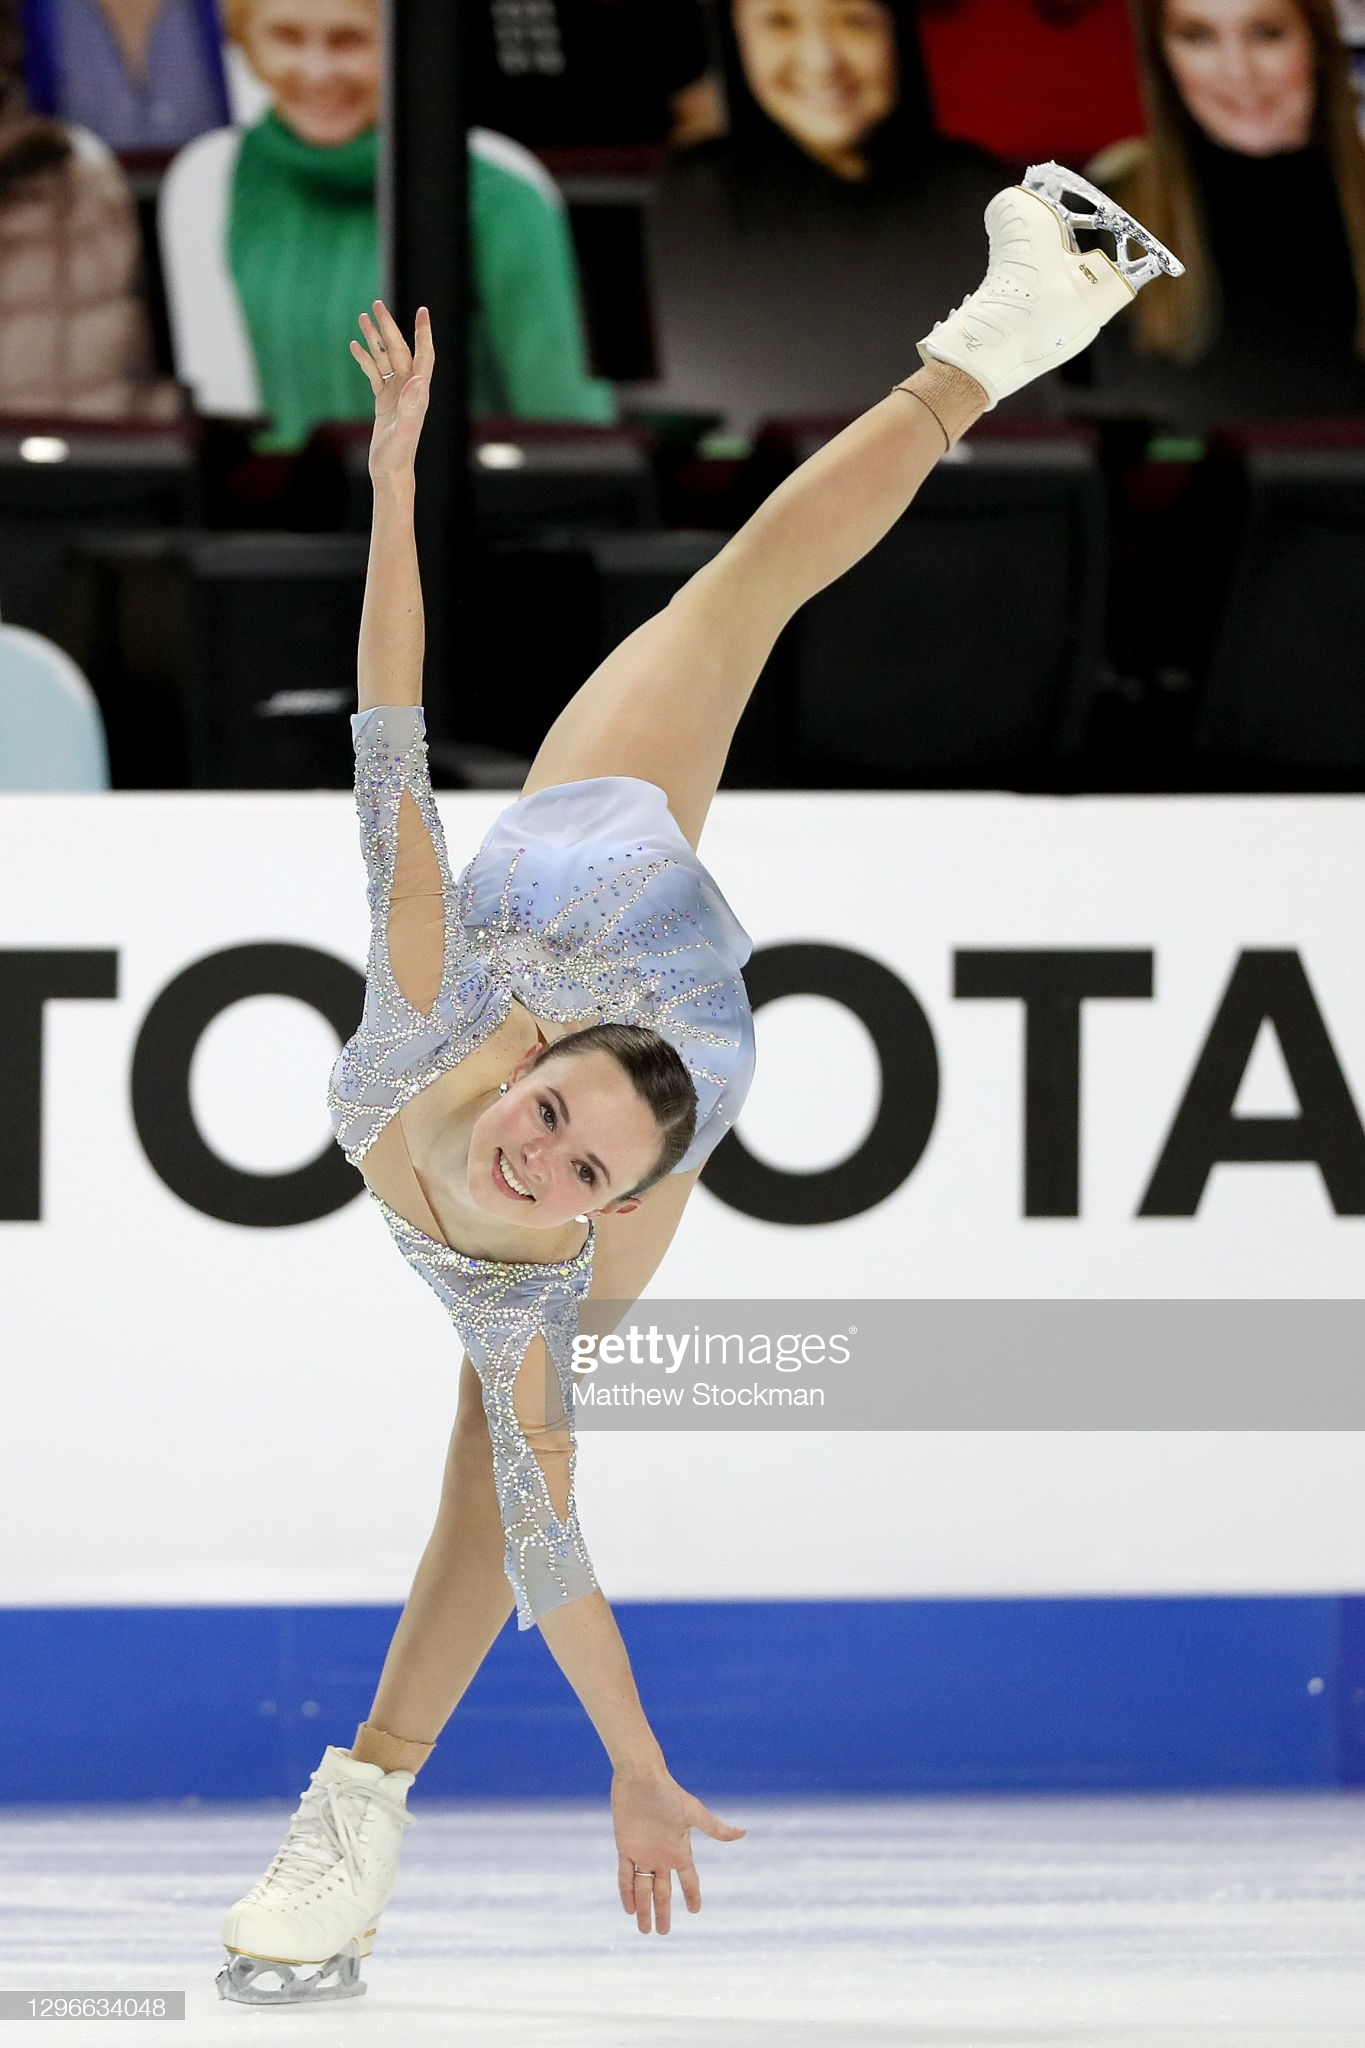 https://i.ibb.co/HqDb9X5/LAS-VEGAS-NEVADA-JANUARY-15-Mariah-Bell-skates-in-the-Ladies-Free-Skate-during-the-U-S-Figure-Skatin.jpg